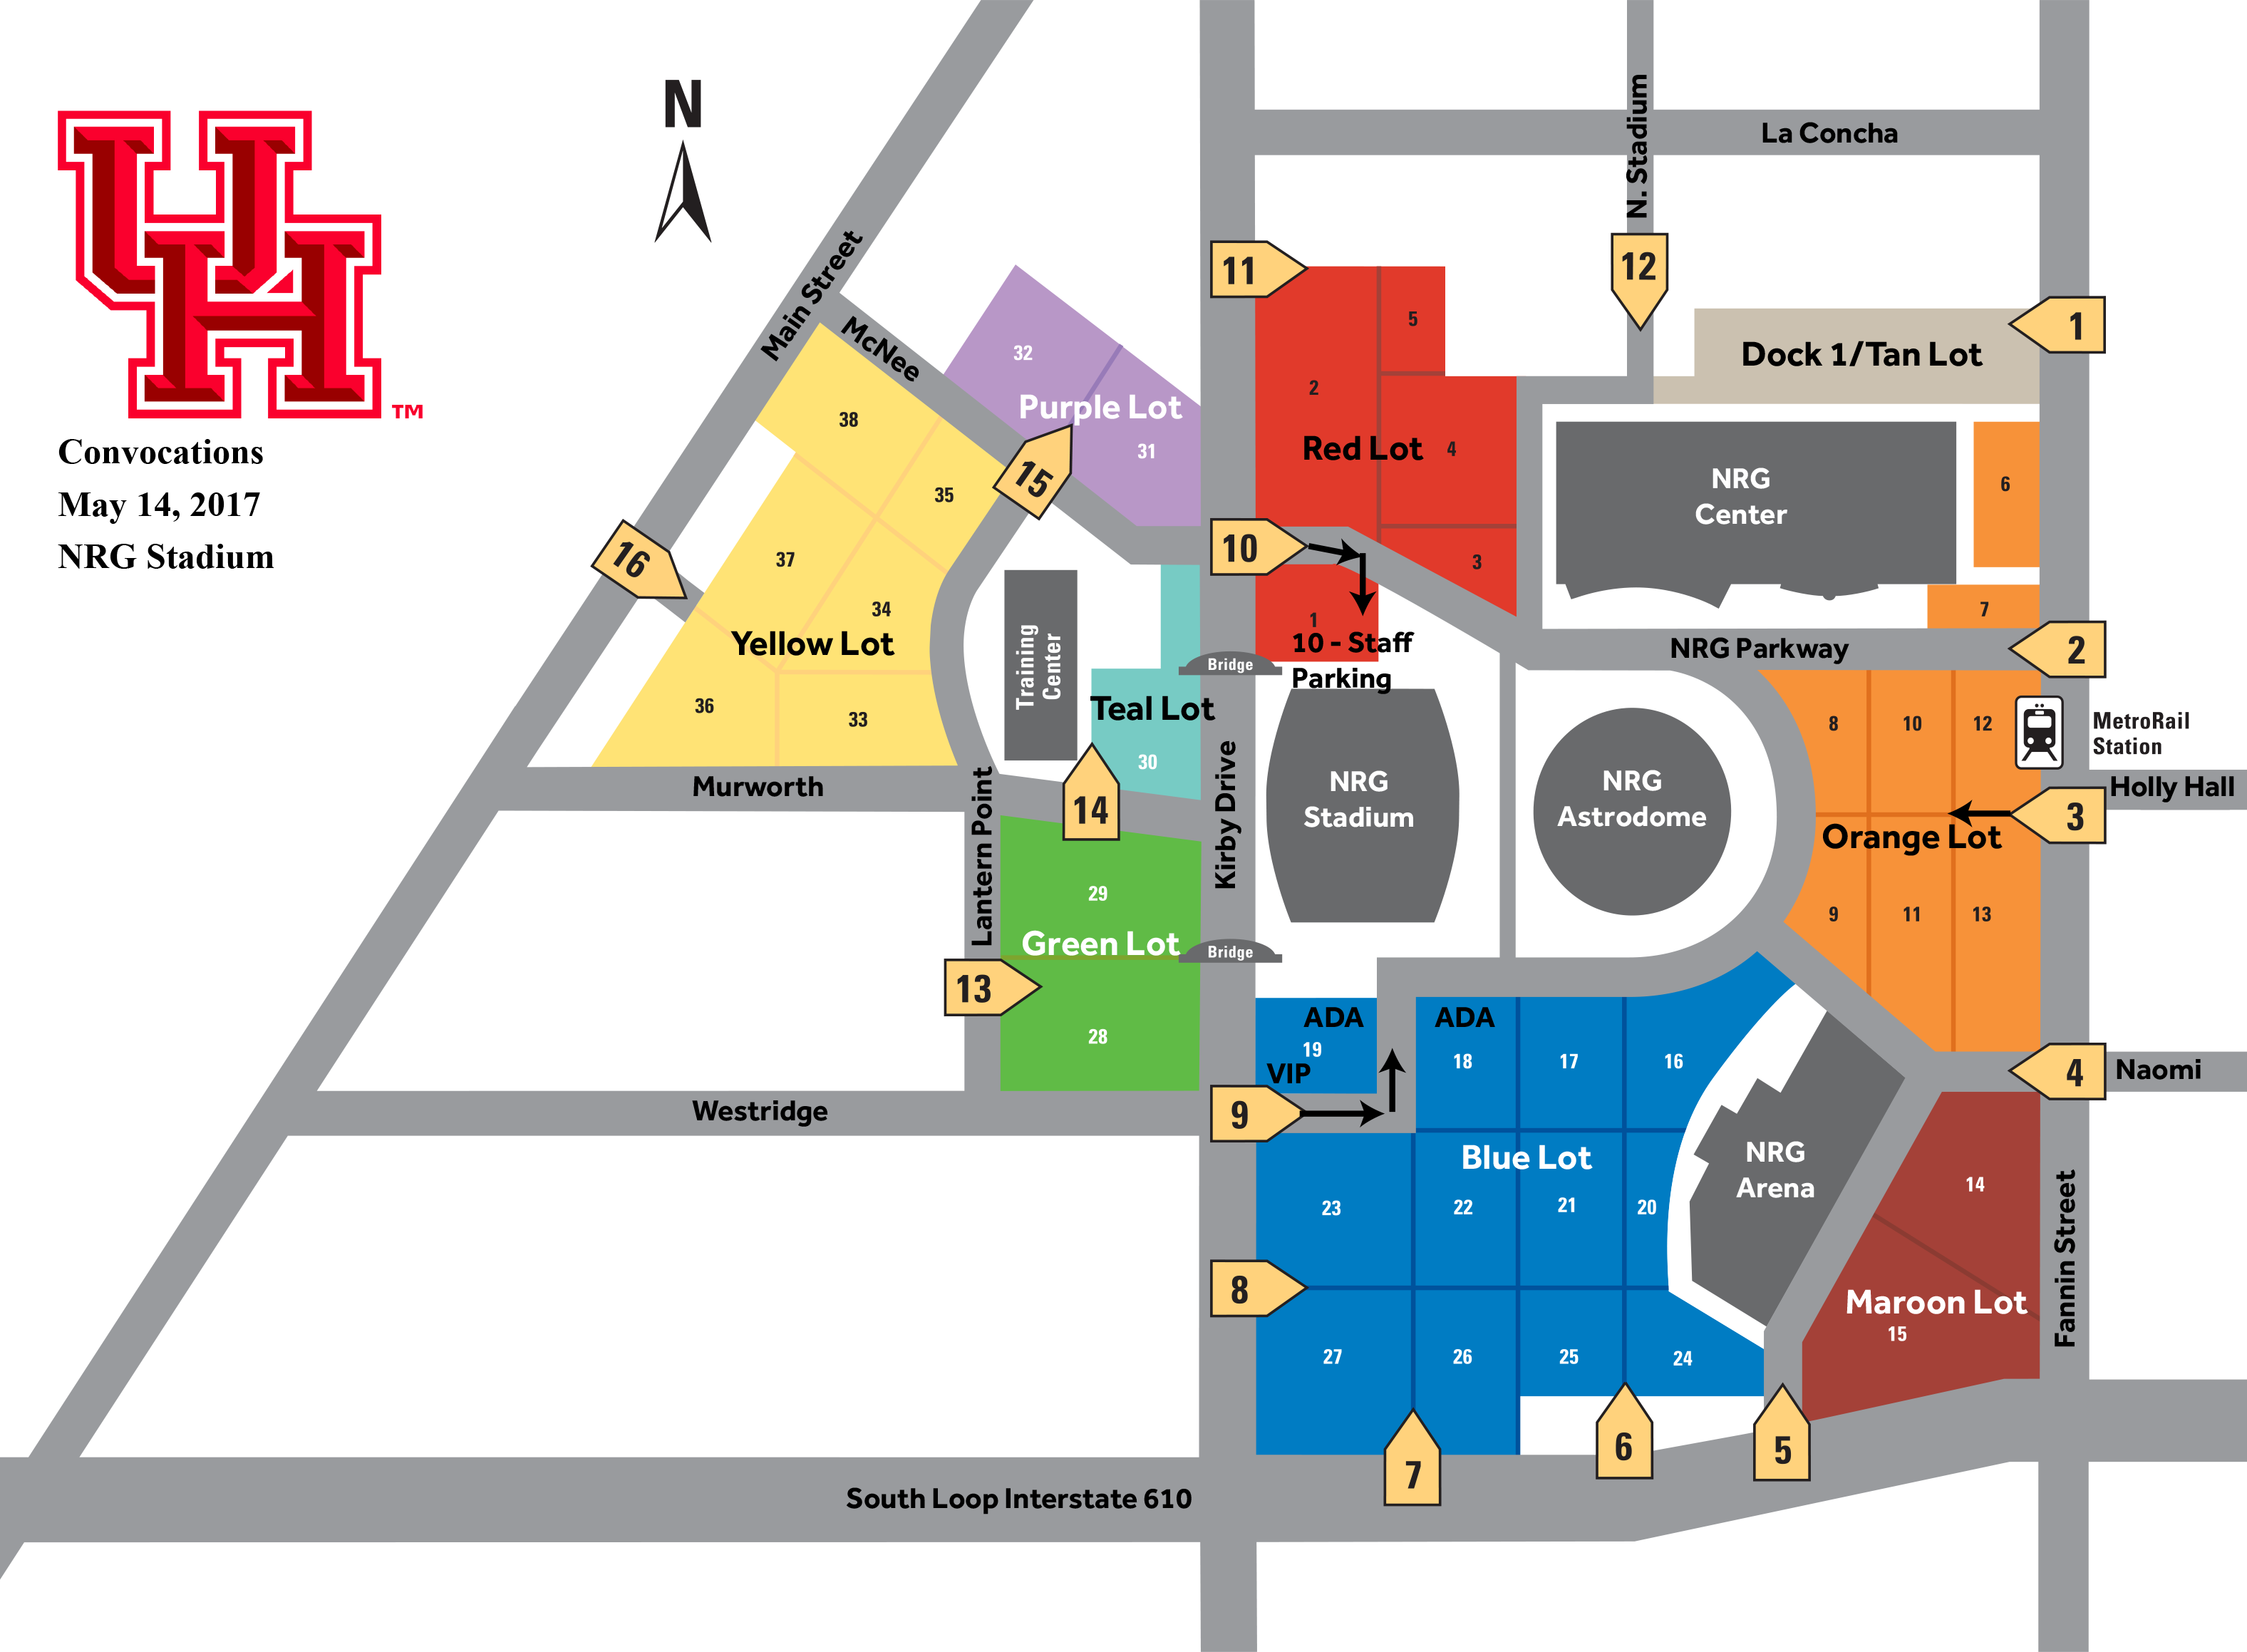 NRG Stadium Convocation Parking Map